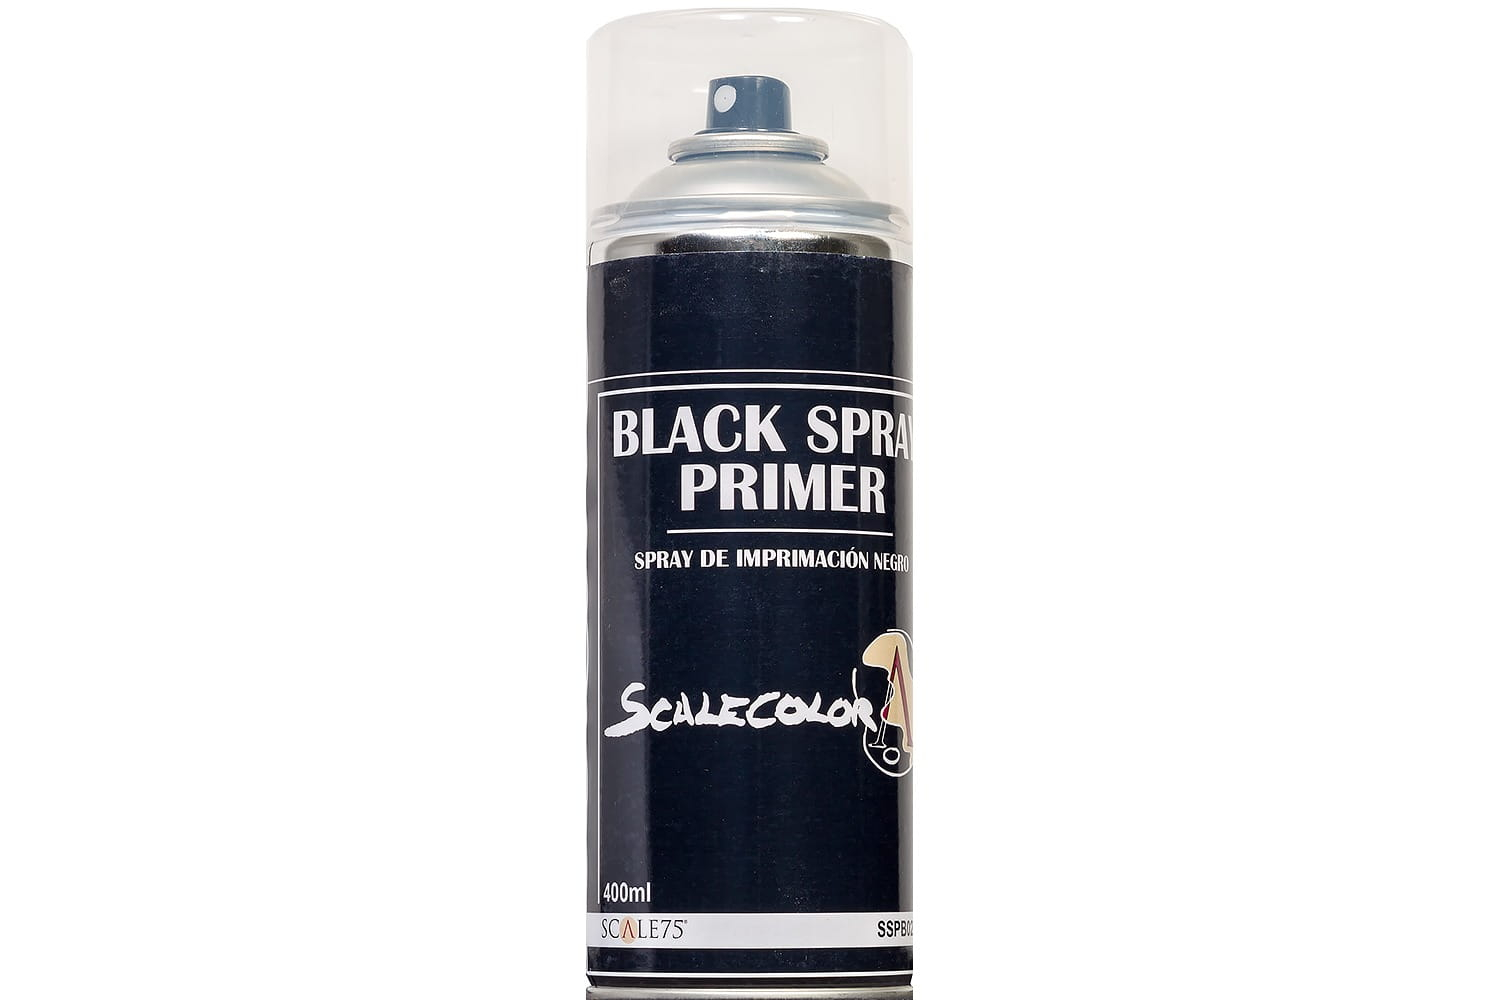 Scalecolor: Black Spray Primer (400ml)